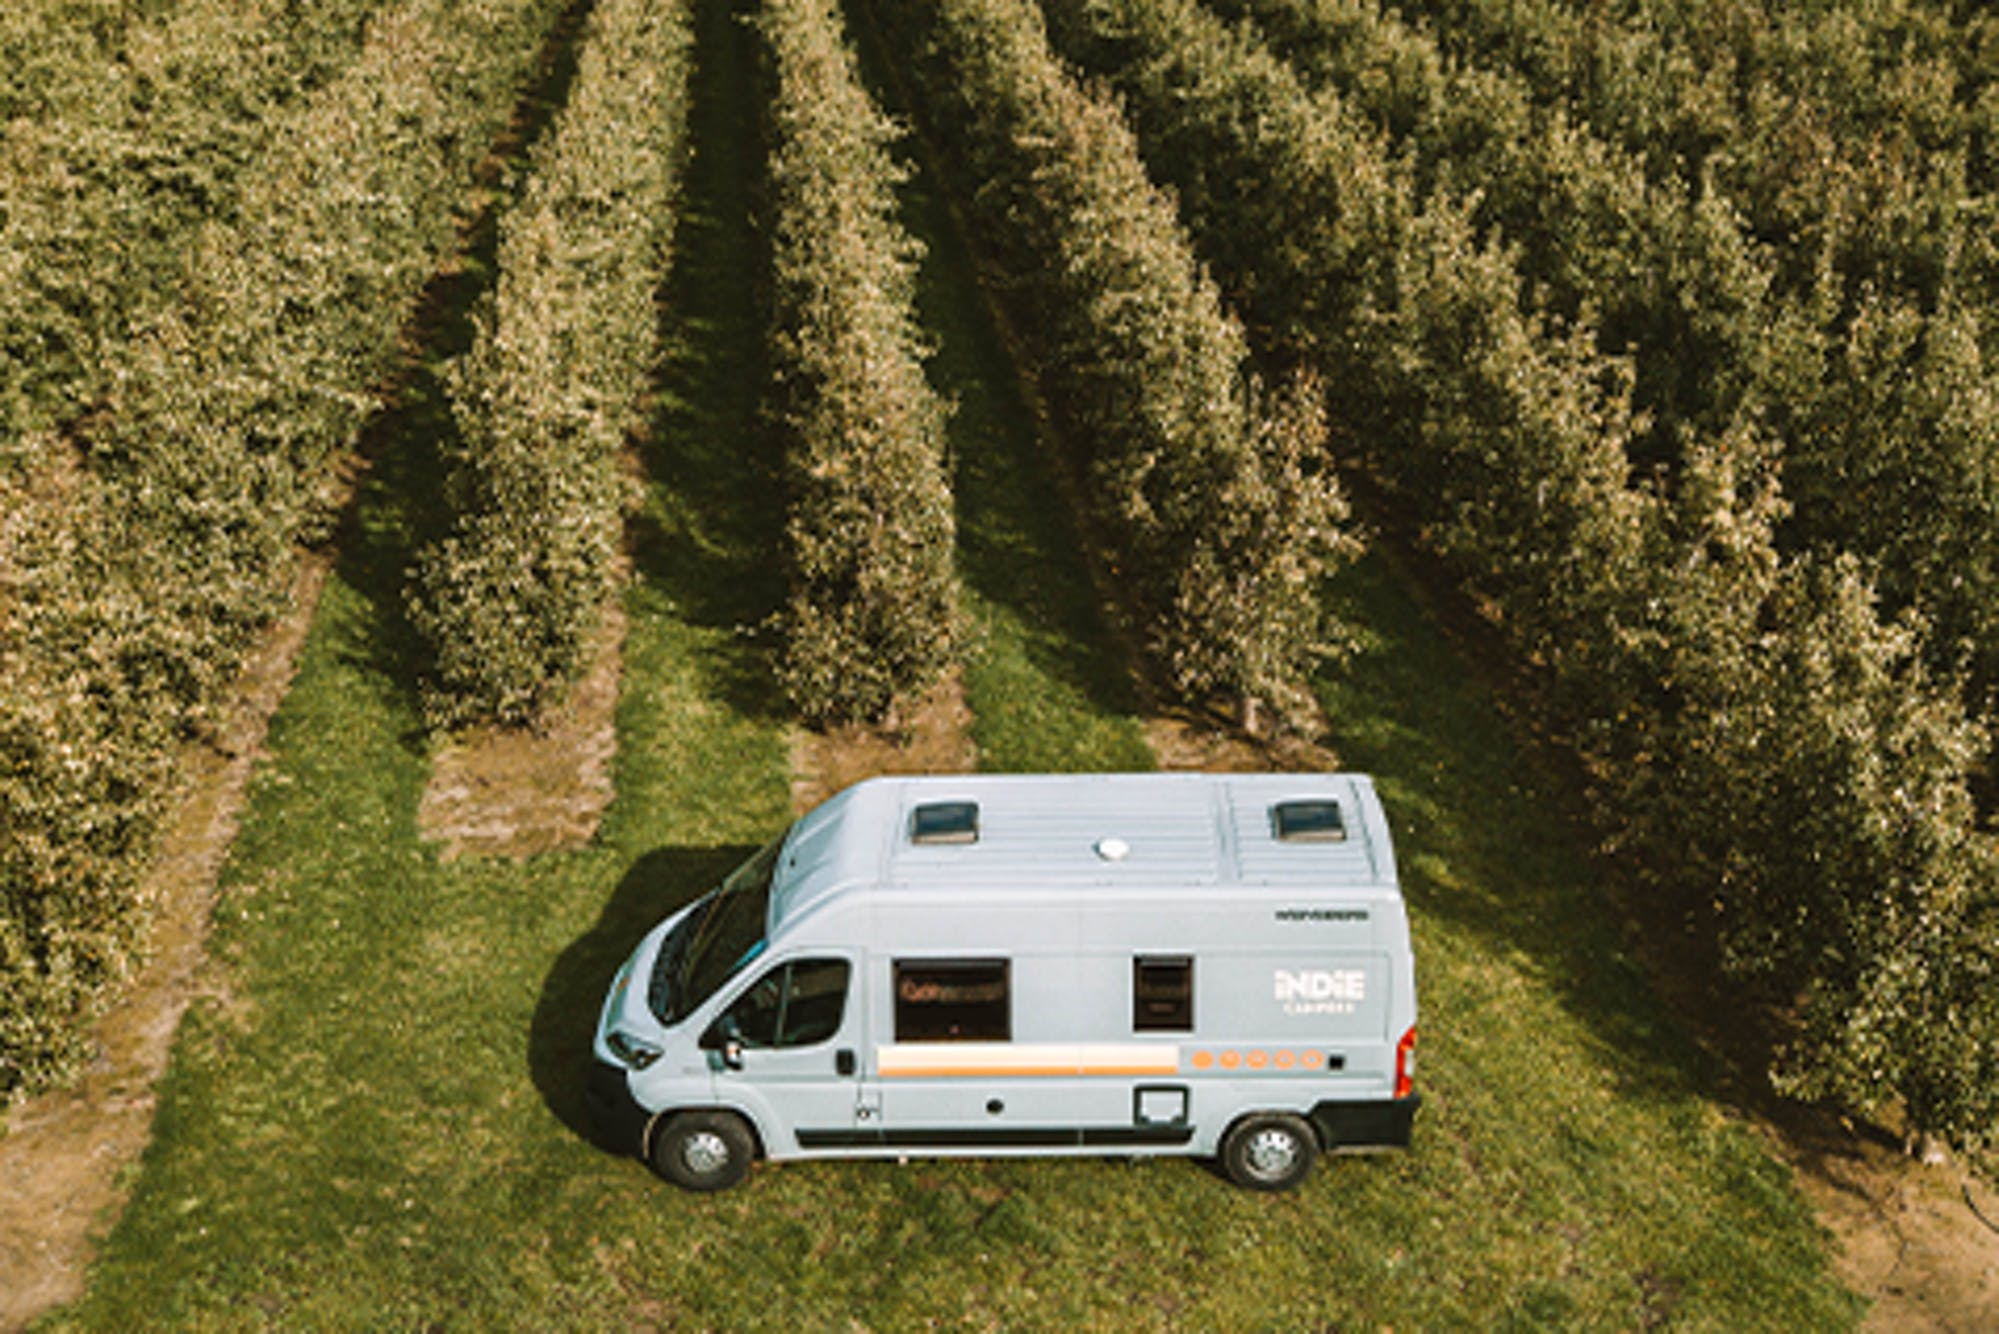 Image of a campervan parked in a field